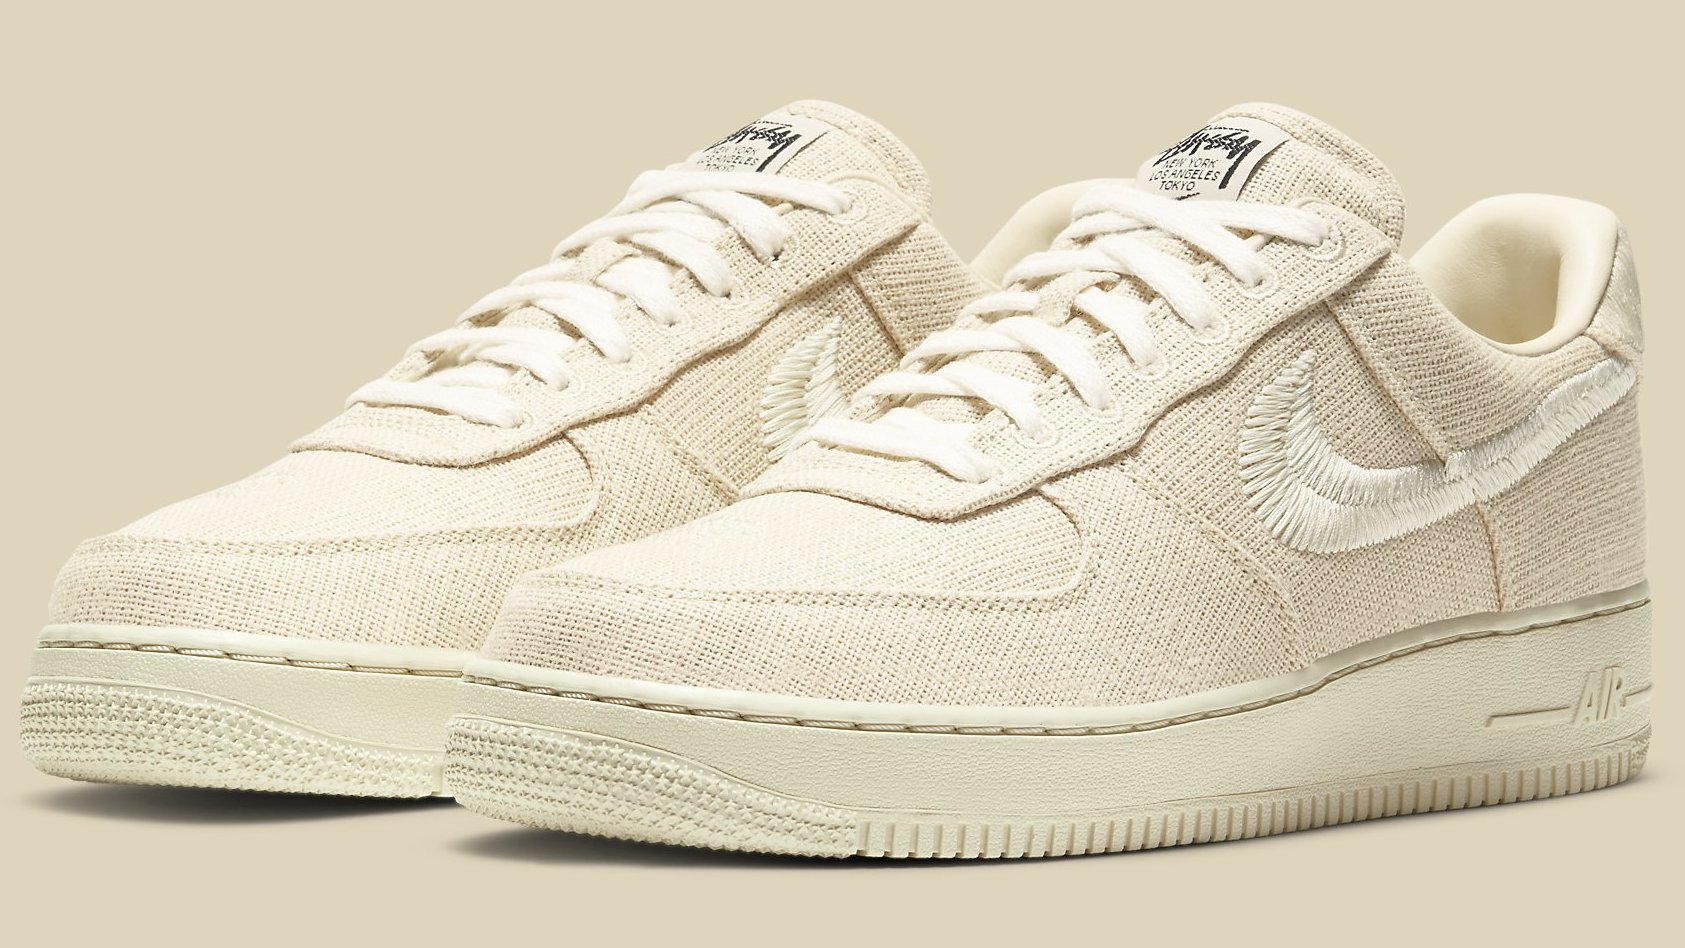 Stussy x Nike Air Force 1 Low 'Black' 'Fossil Stone' Release Date ...